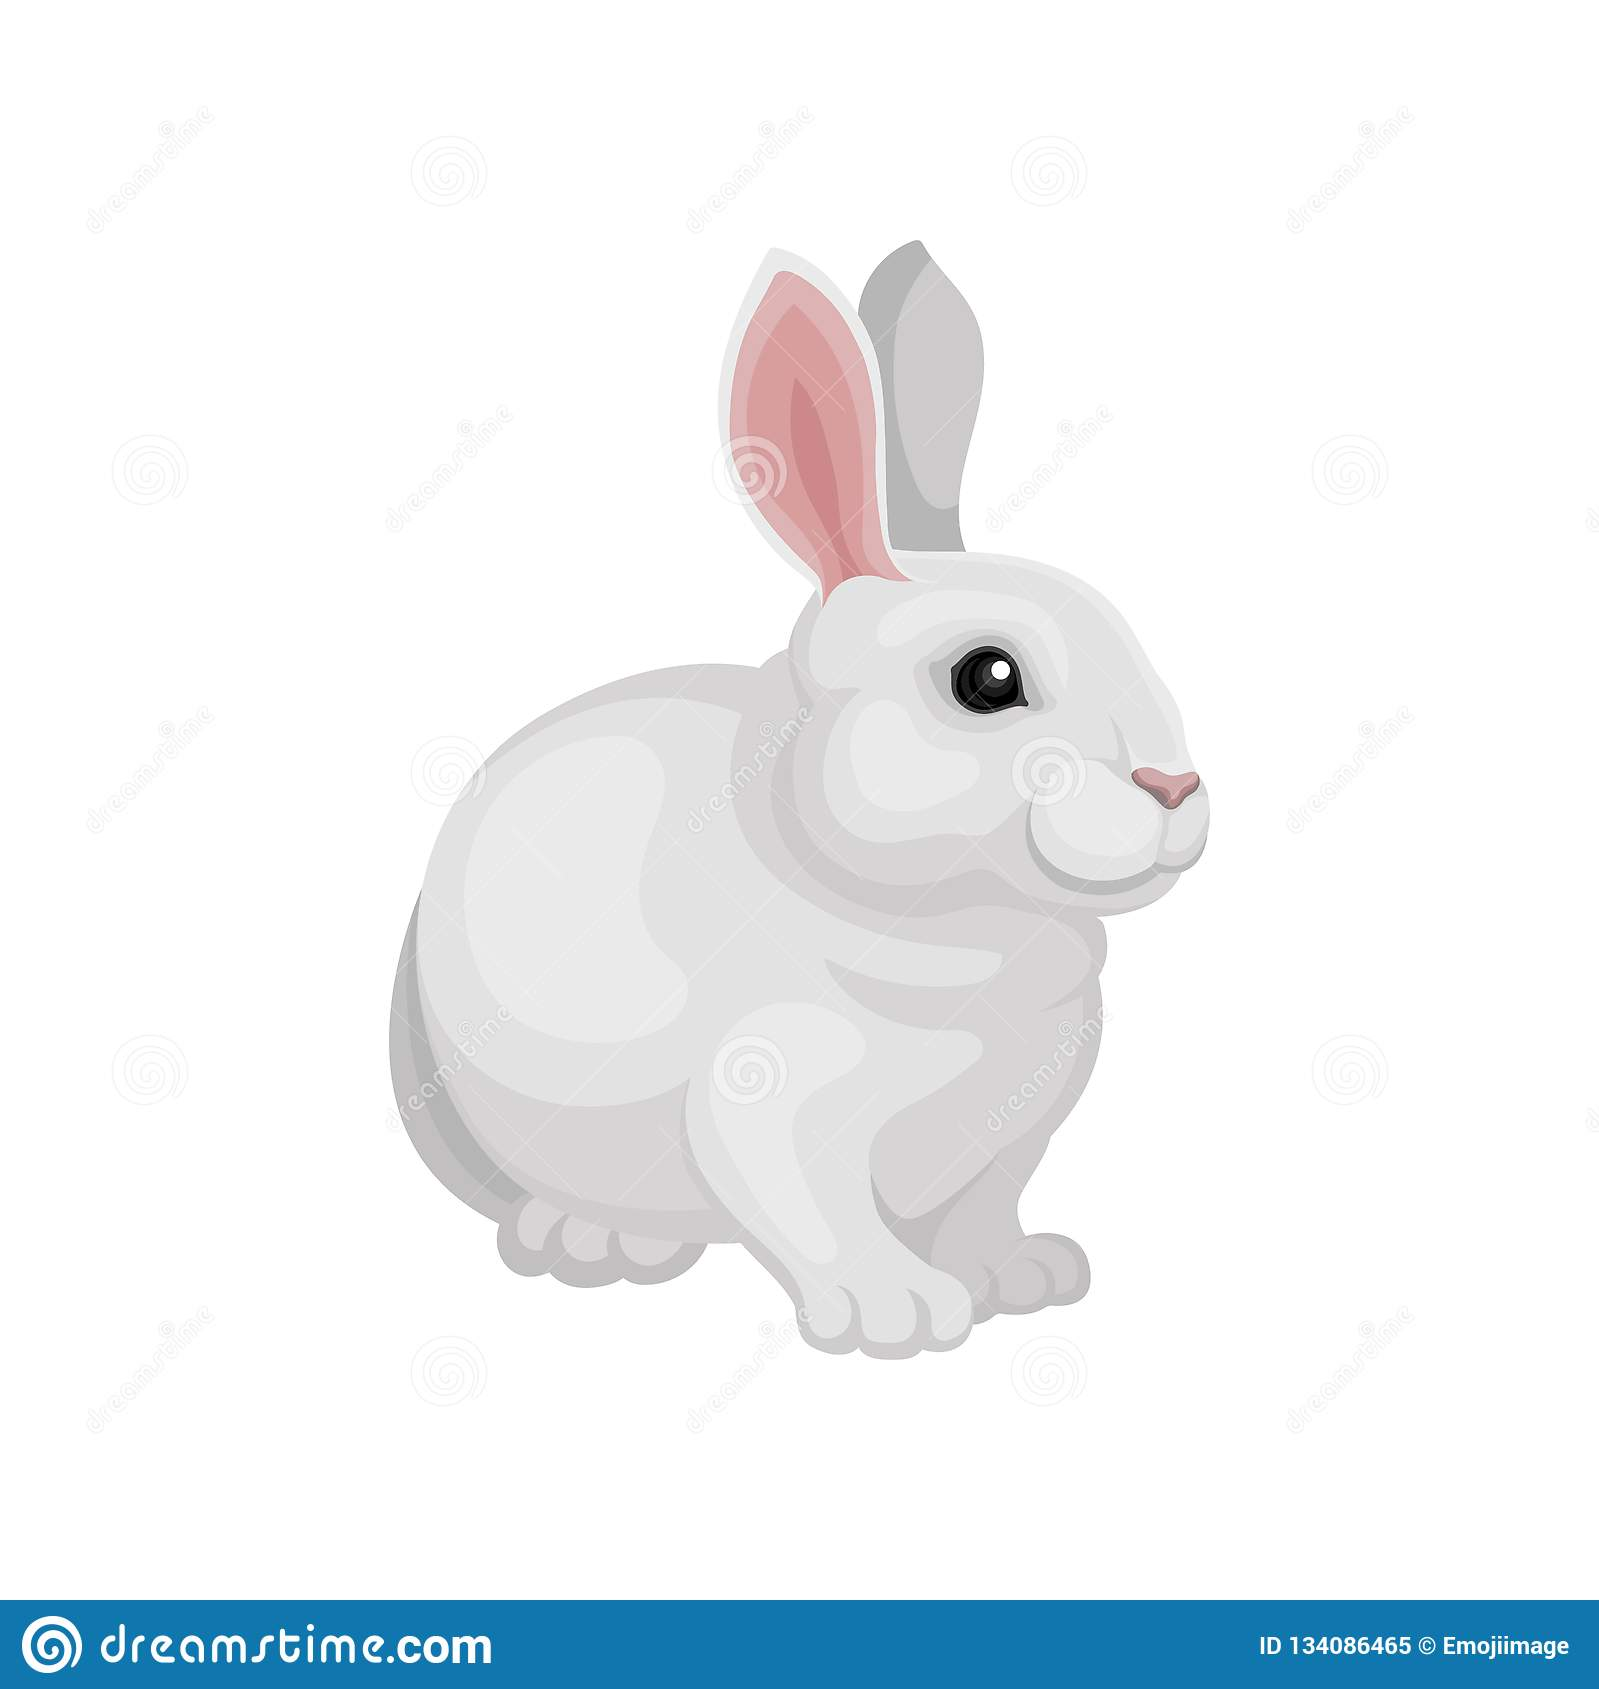 Flat vector design of adorable rabbit. Cute mammal animal. White bunny with long pink ears. Home pet